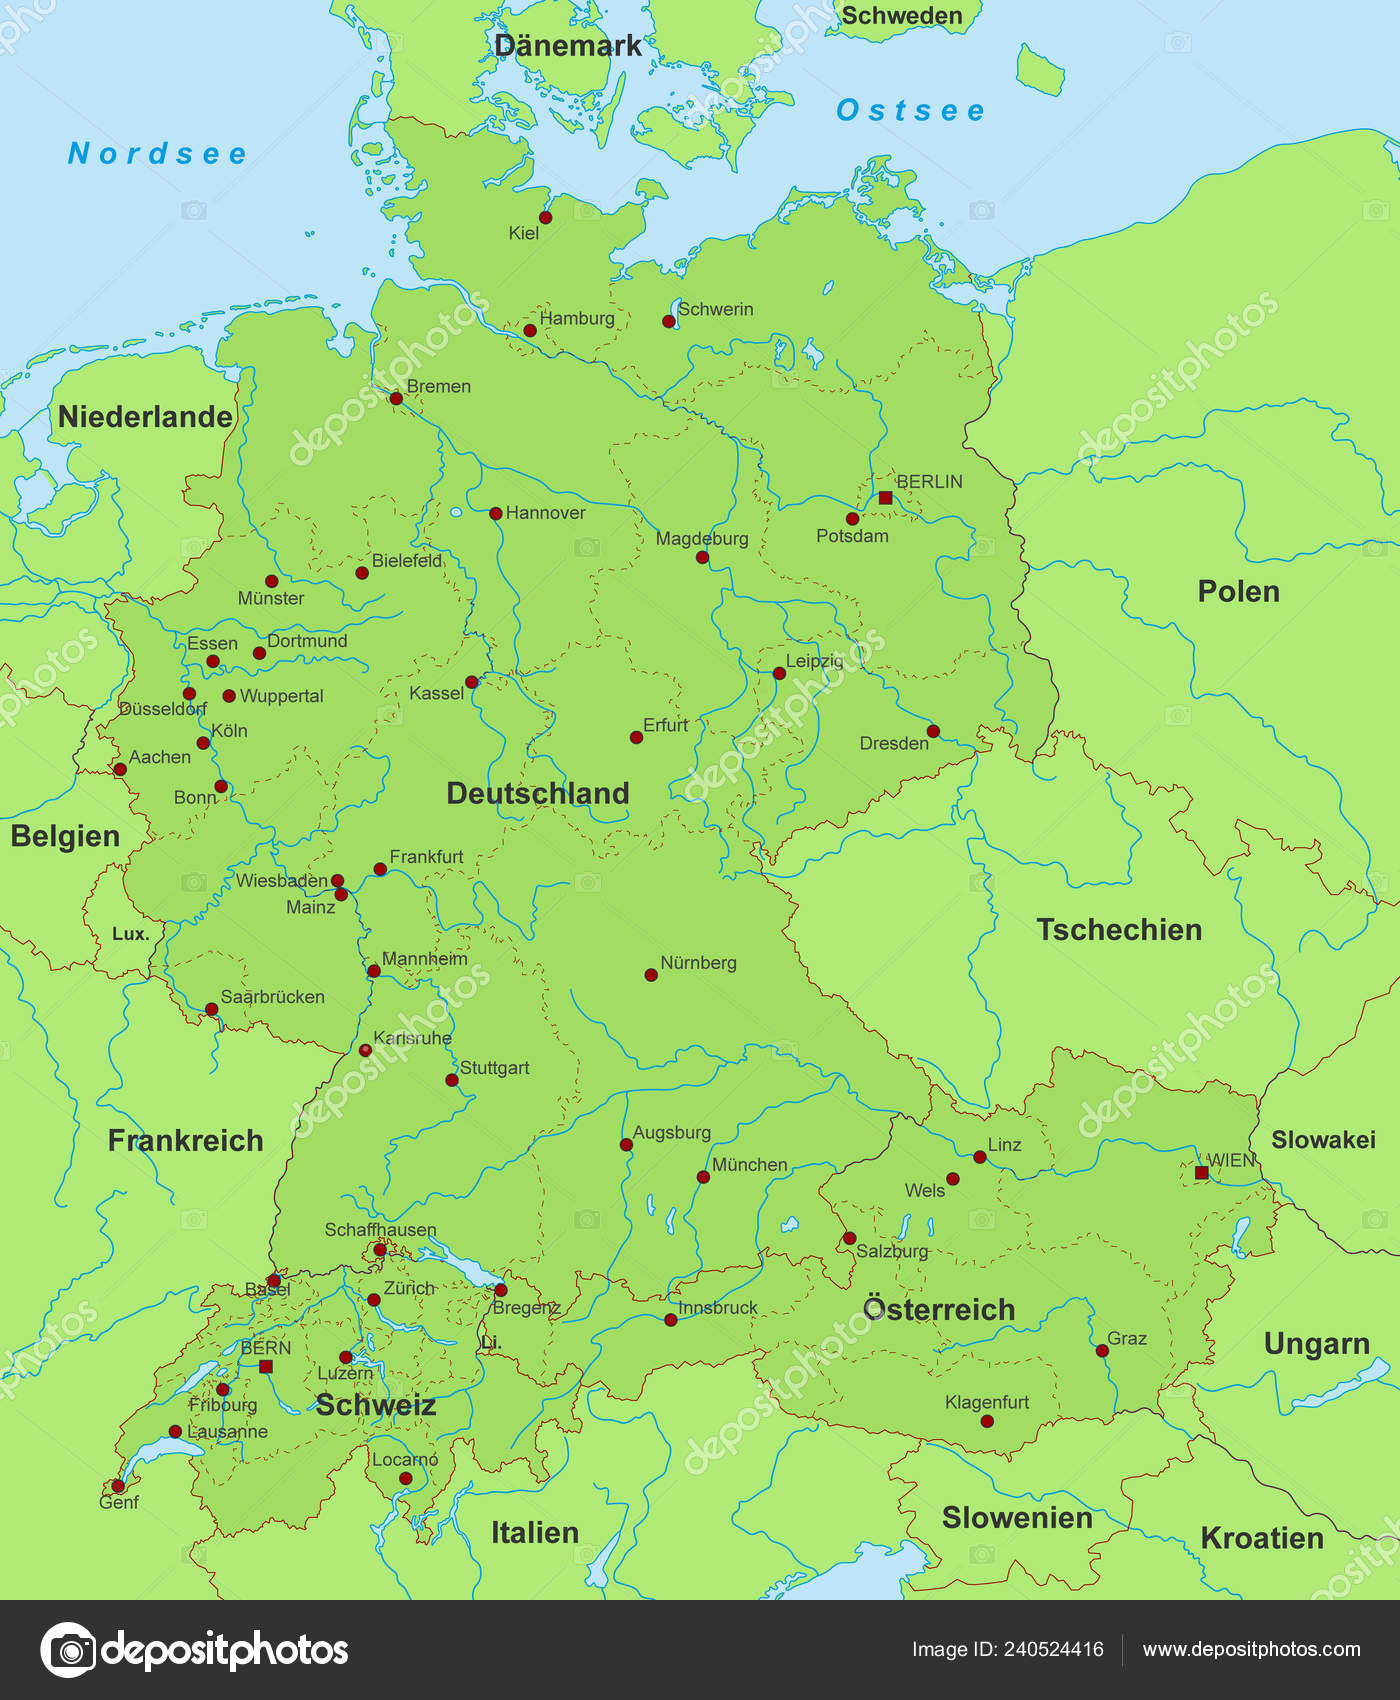 Map of germany switzerland and austria | Map Germany ...